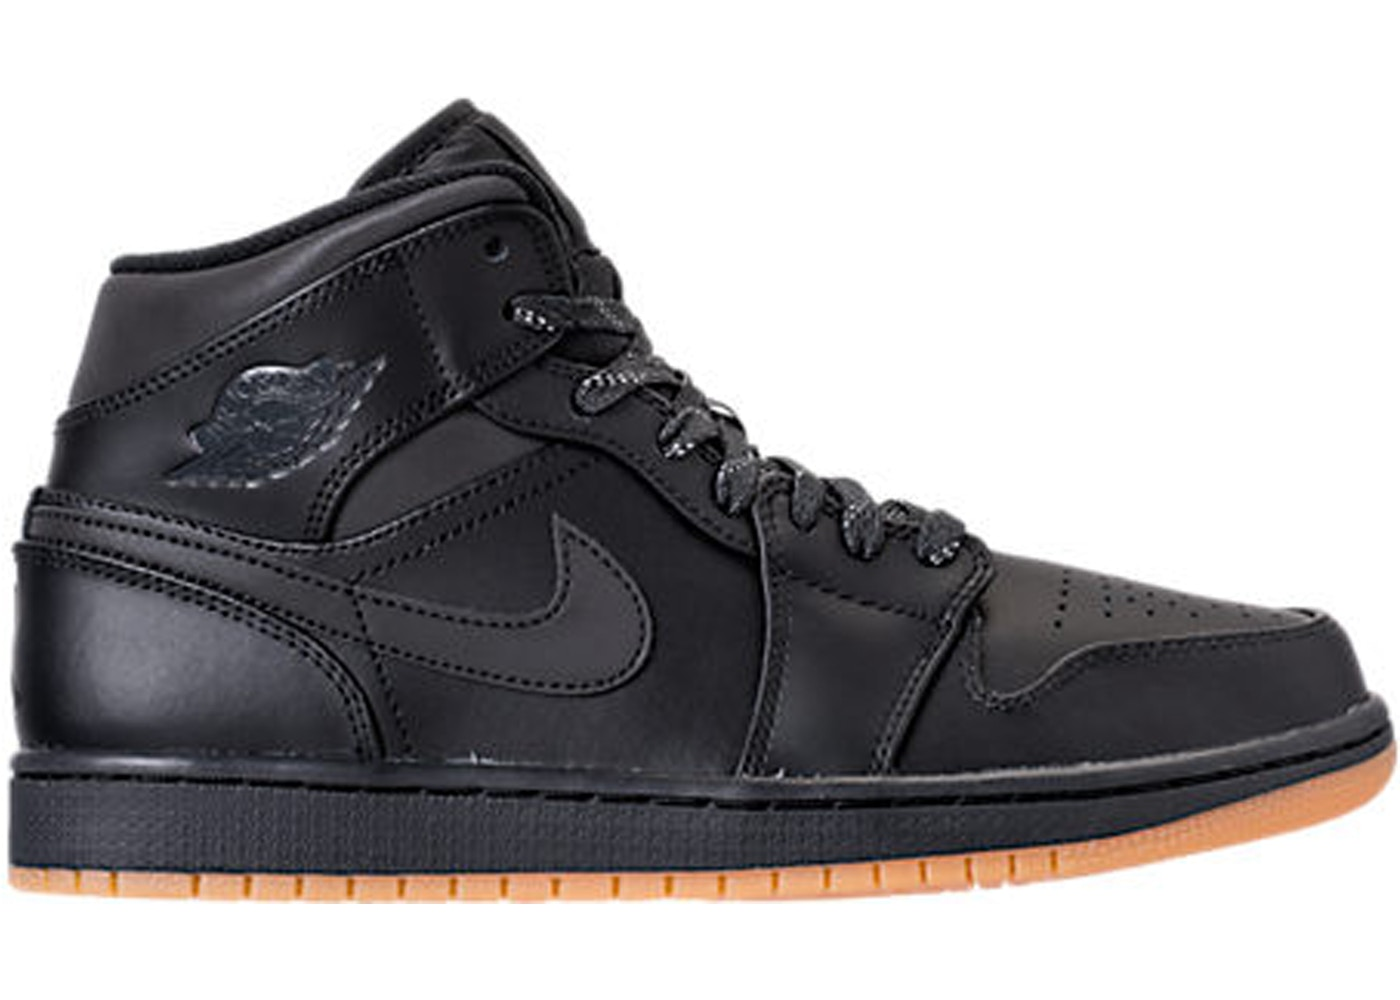 Jordan 1 Retro Mid Winterized Black Anthracite - AA3992-002 8fd9f72ee